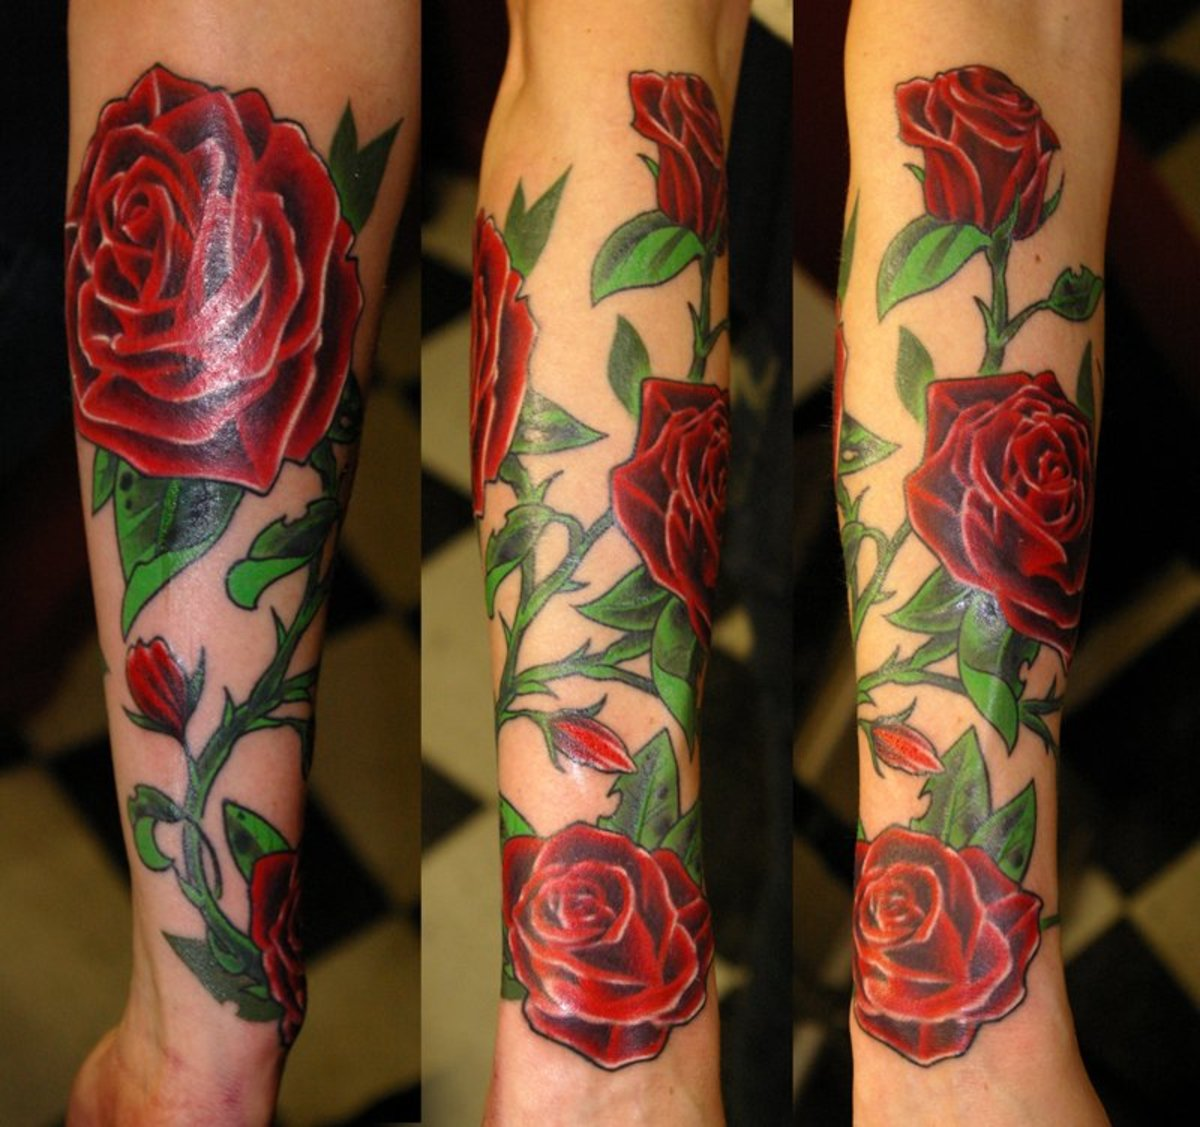 Rose tattoo with thorn, leaves, and vine